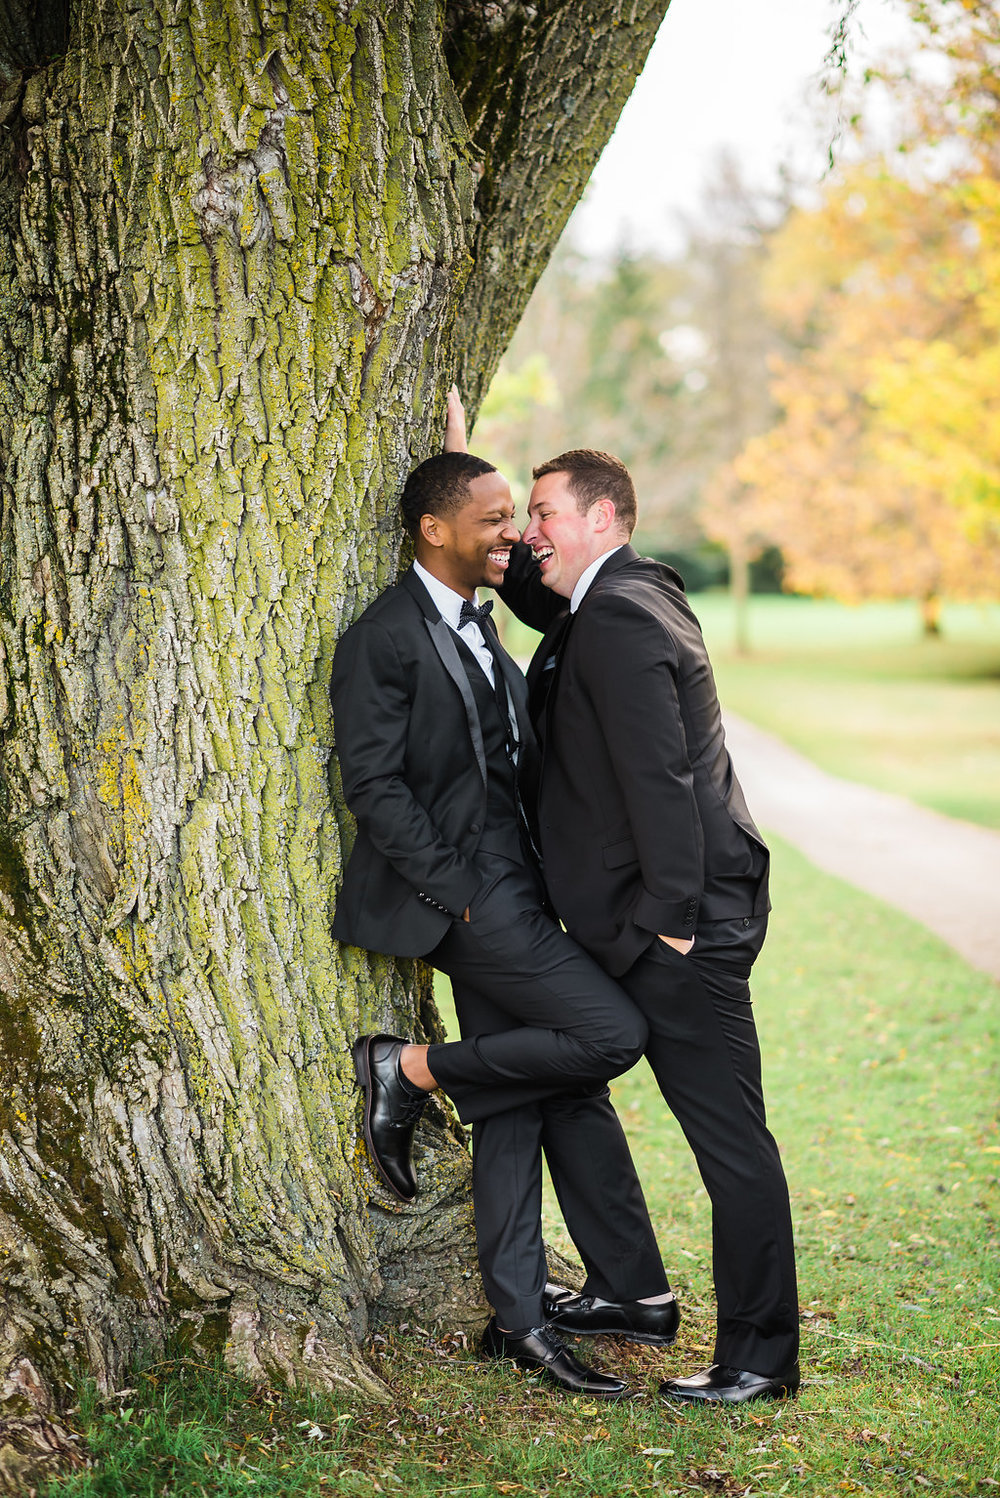 RiverClubofMequon-MequonWI-LGBT-Gay-StyledShoot-99.jpg